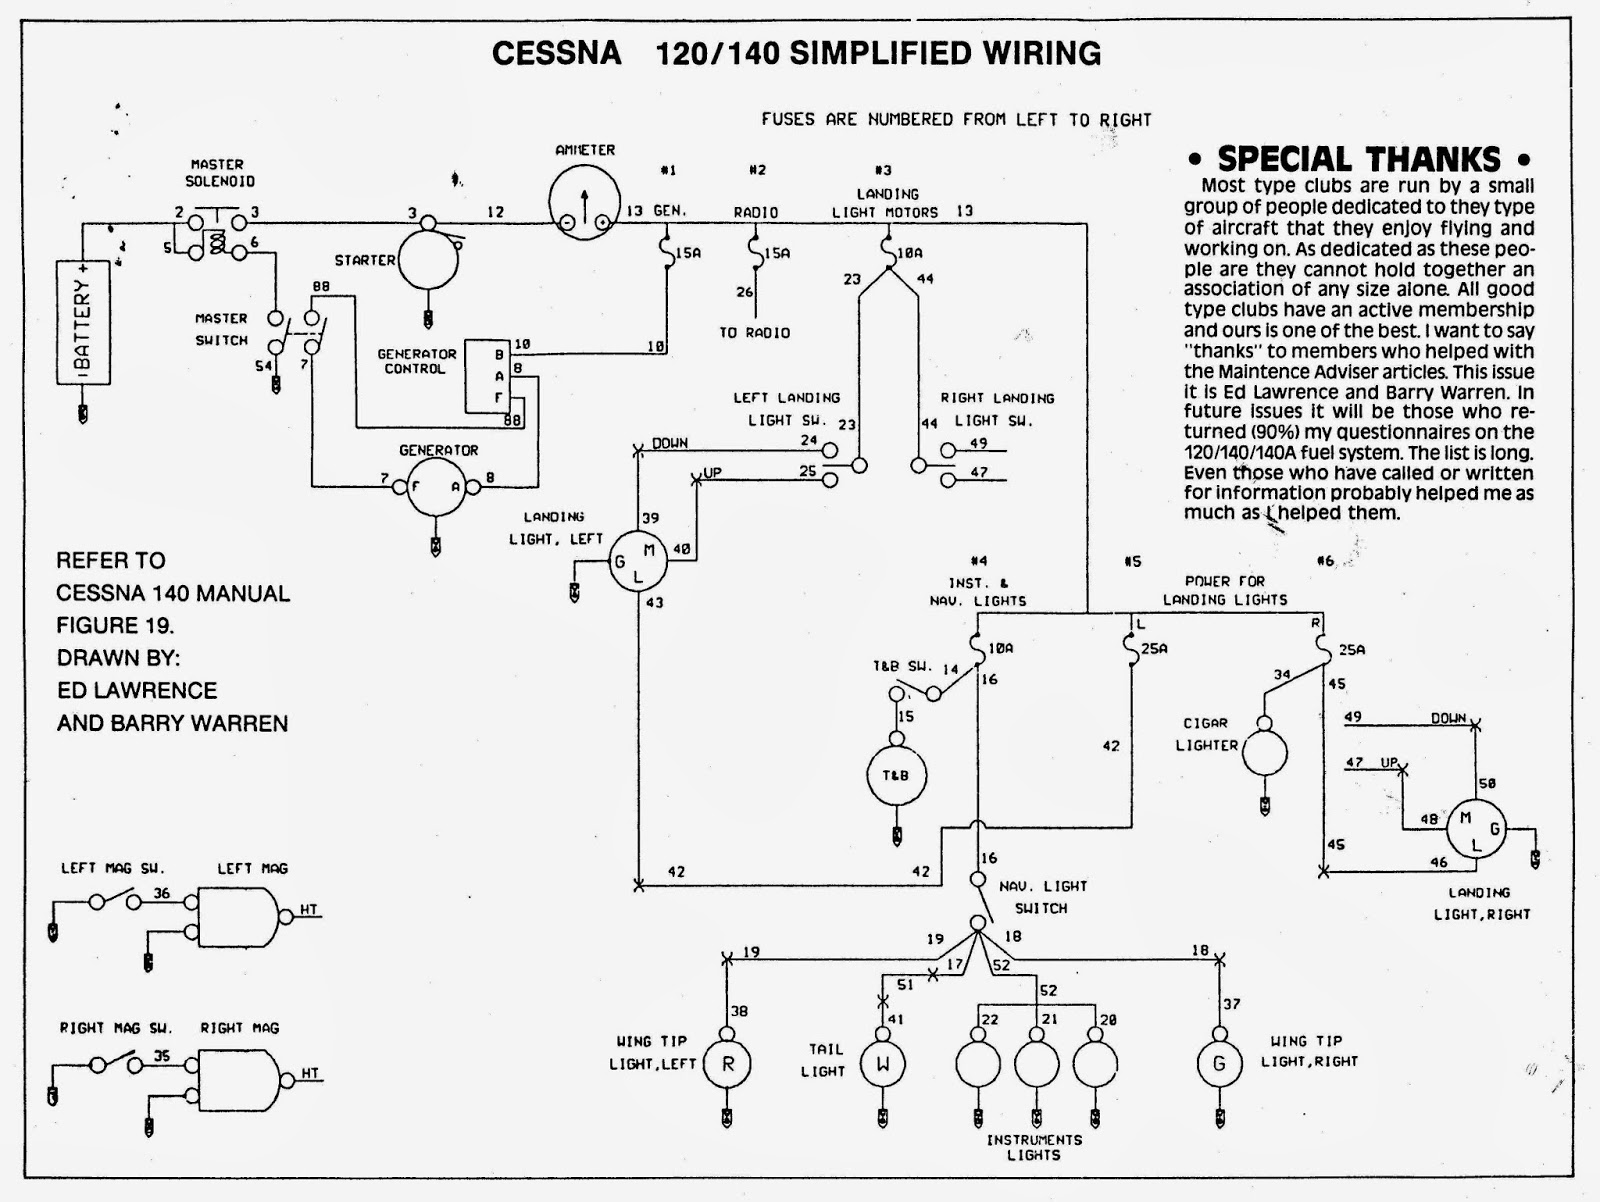 Cessna 140 rebirth electrical loads wiring greentooth